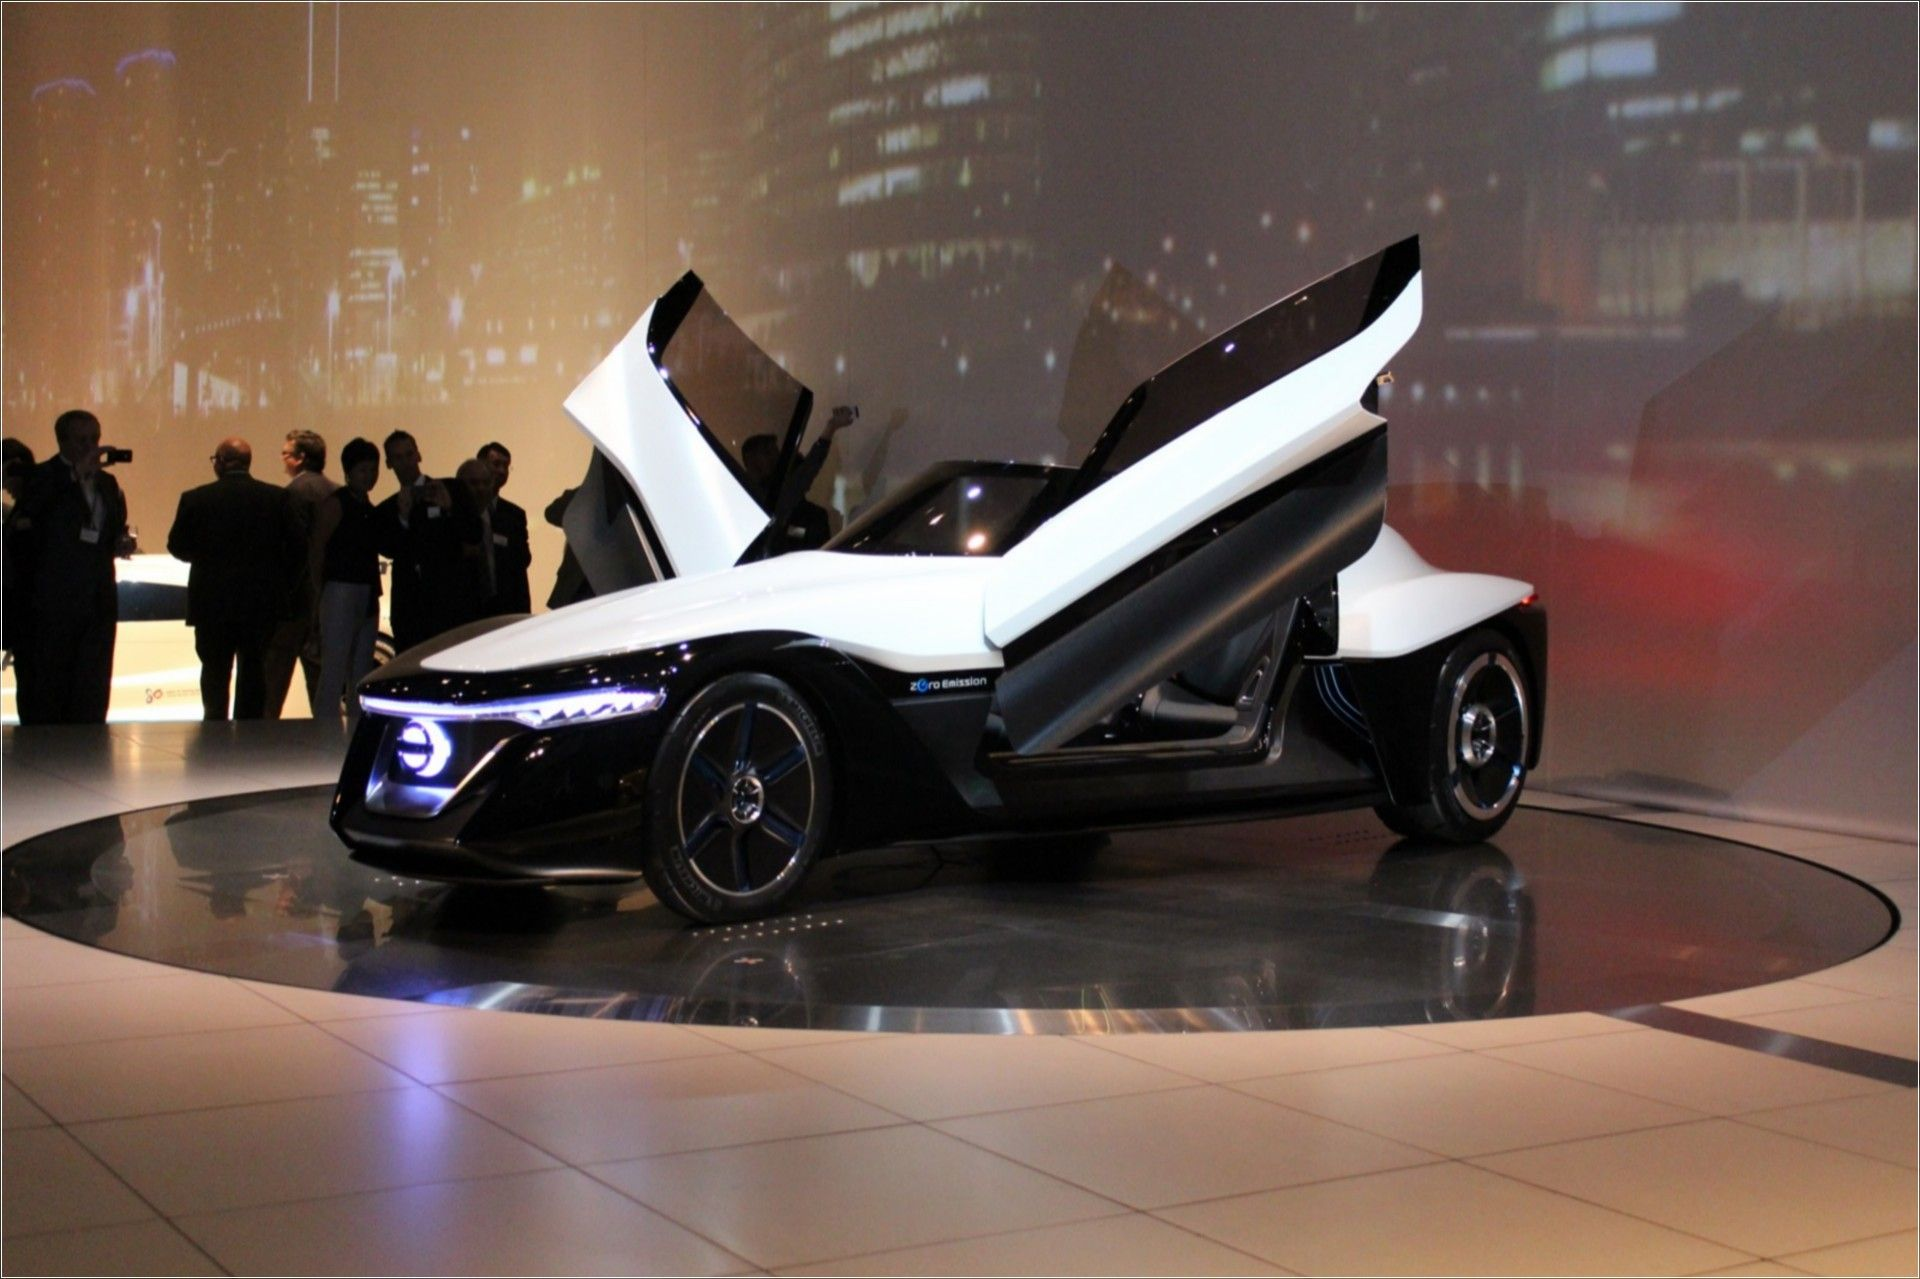 Please The Most Beautiful Electric Car in The